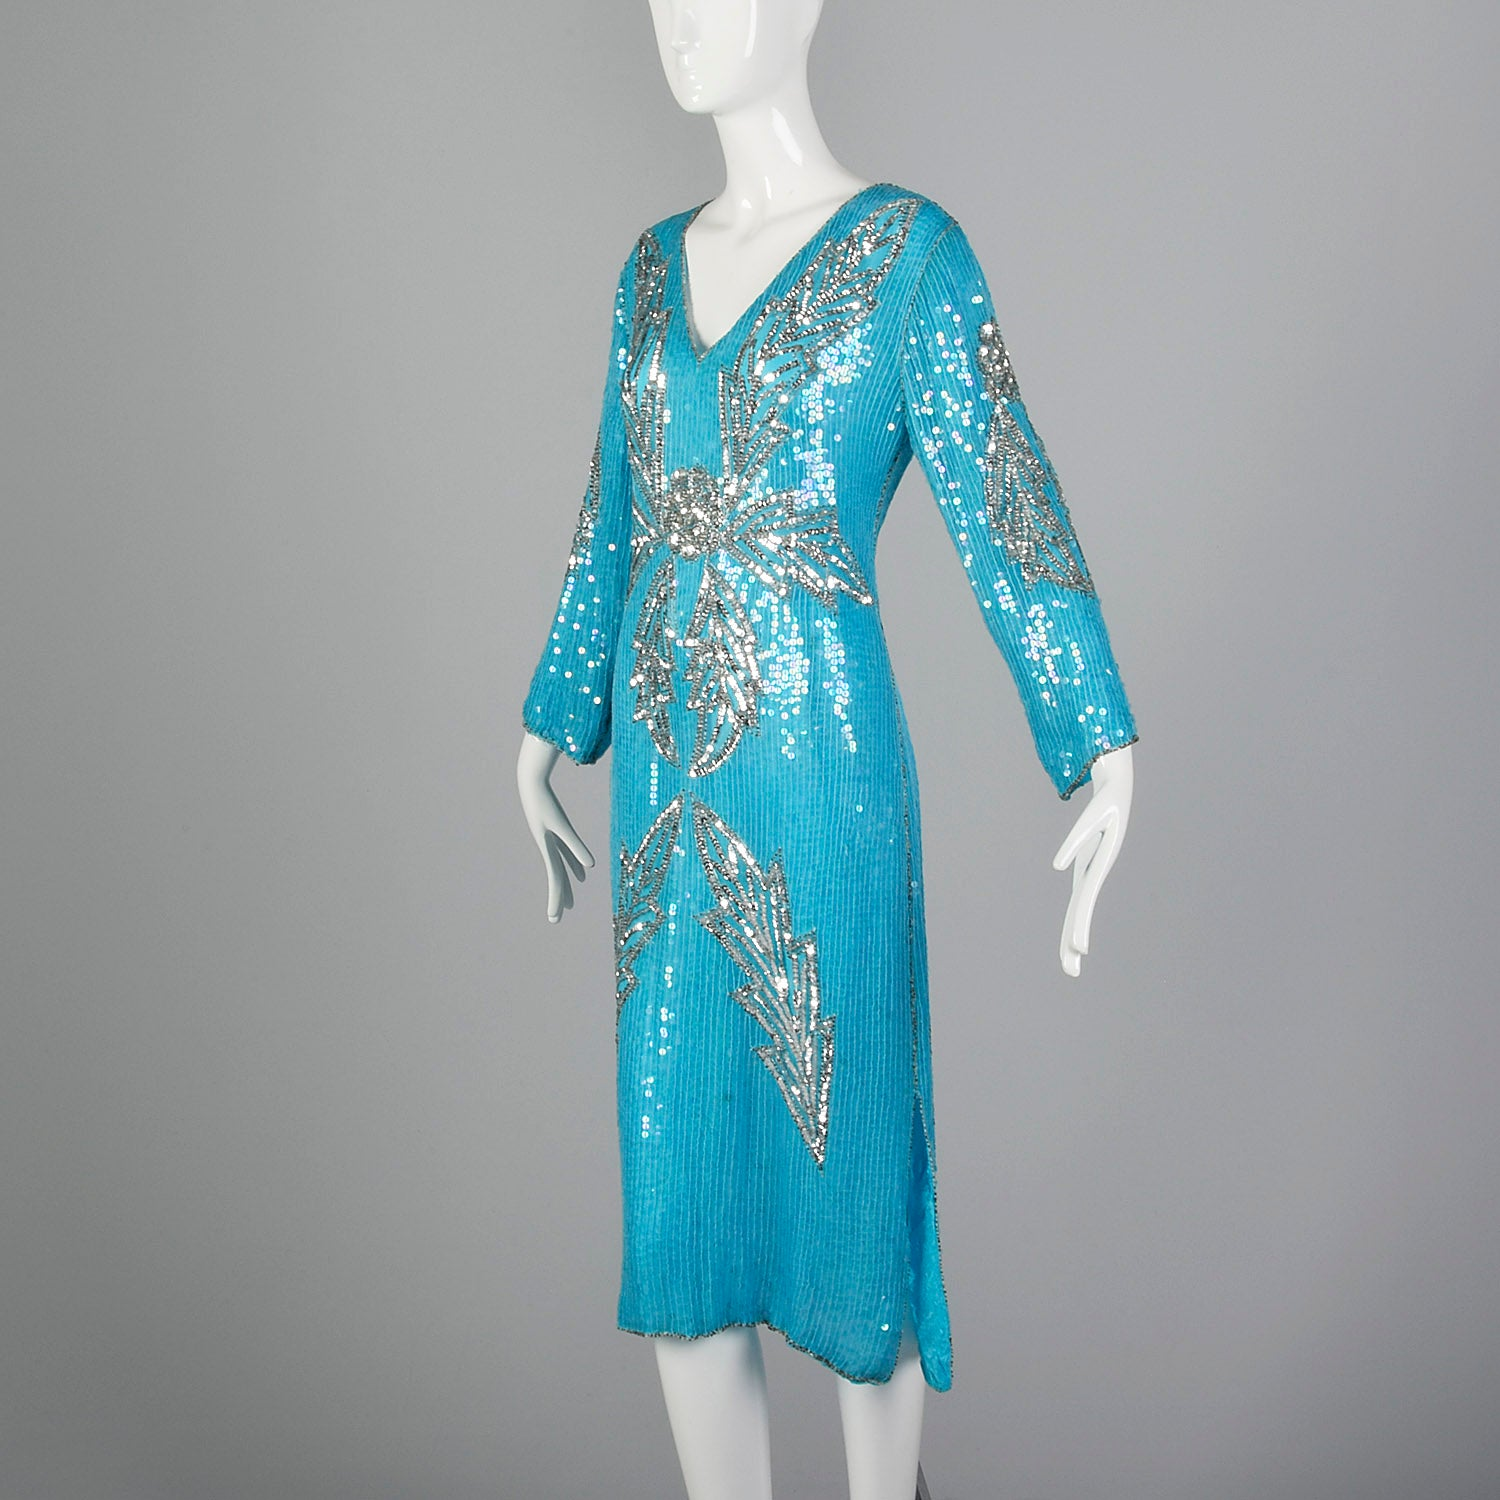 Medium 1970s India Blue Silk Sequin Cocktail Dress